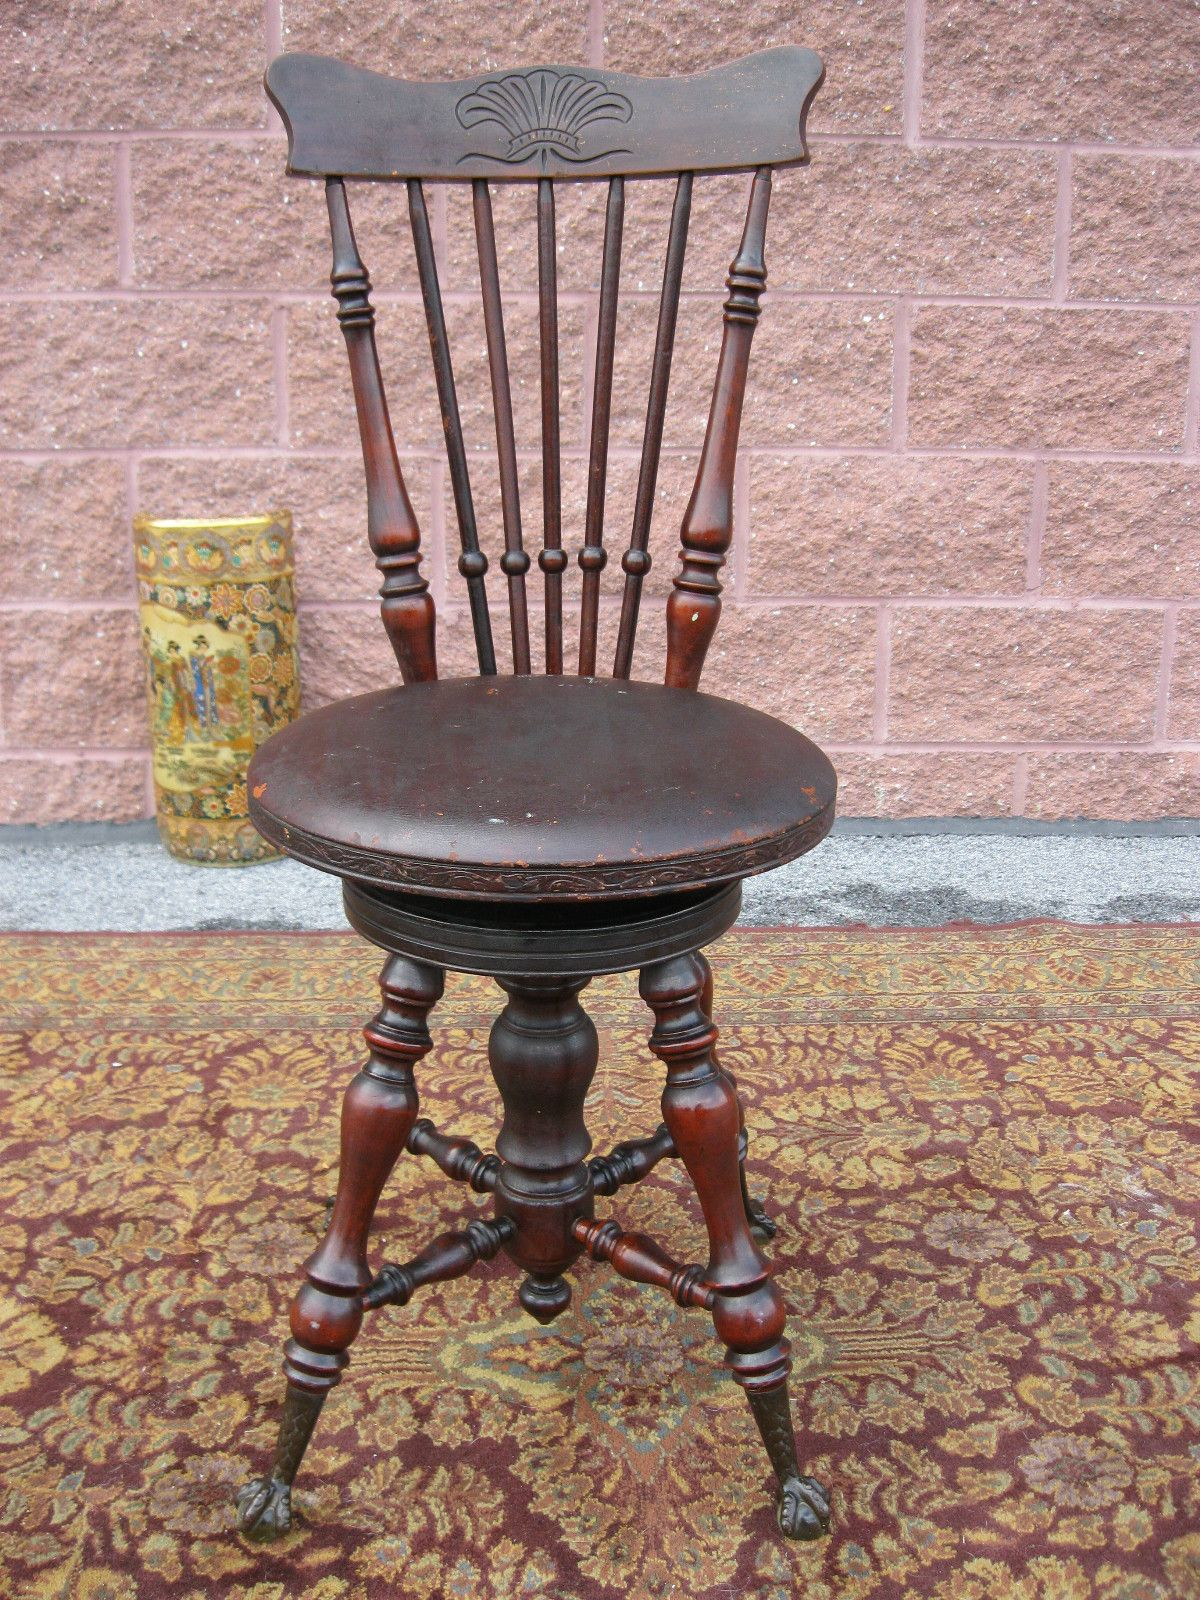 Antique 1800s Victorian High Back Piano Stool Swivel Seat